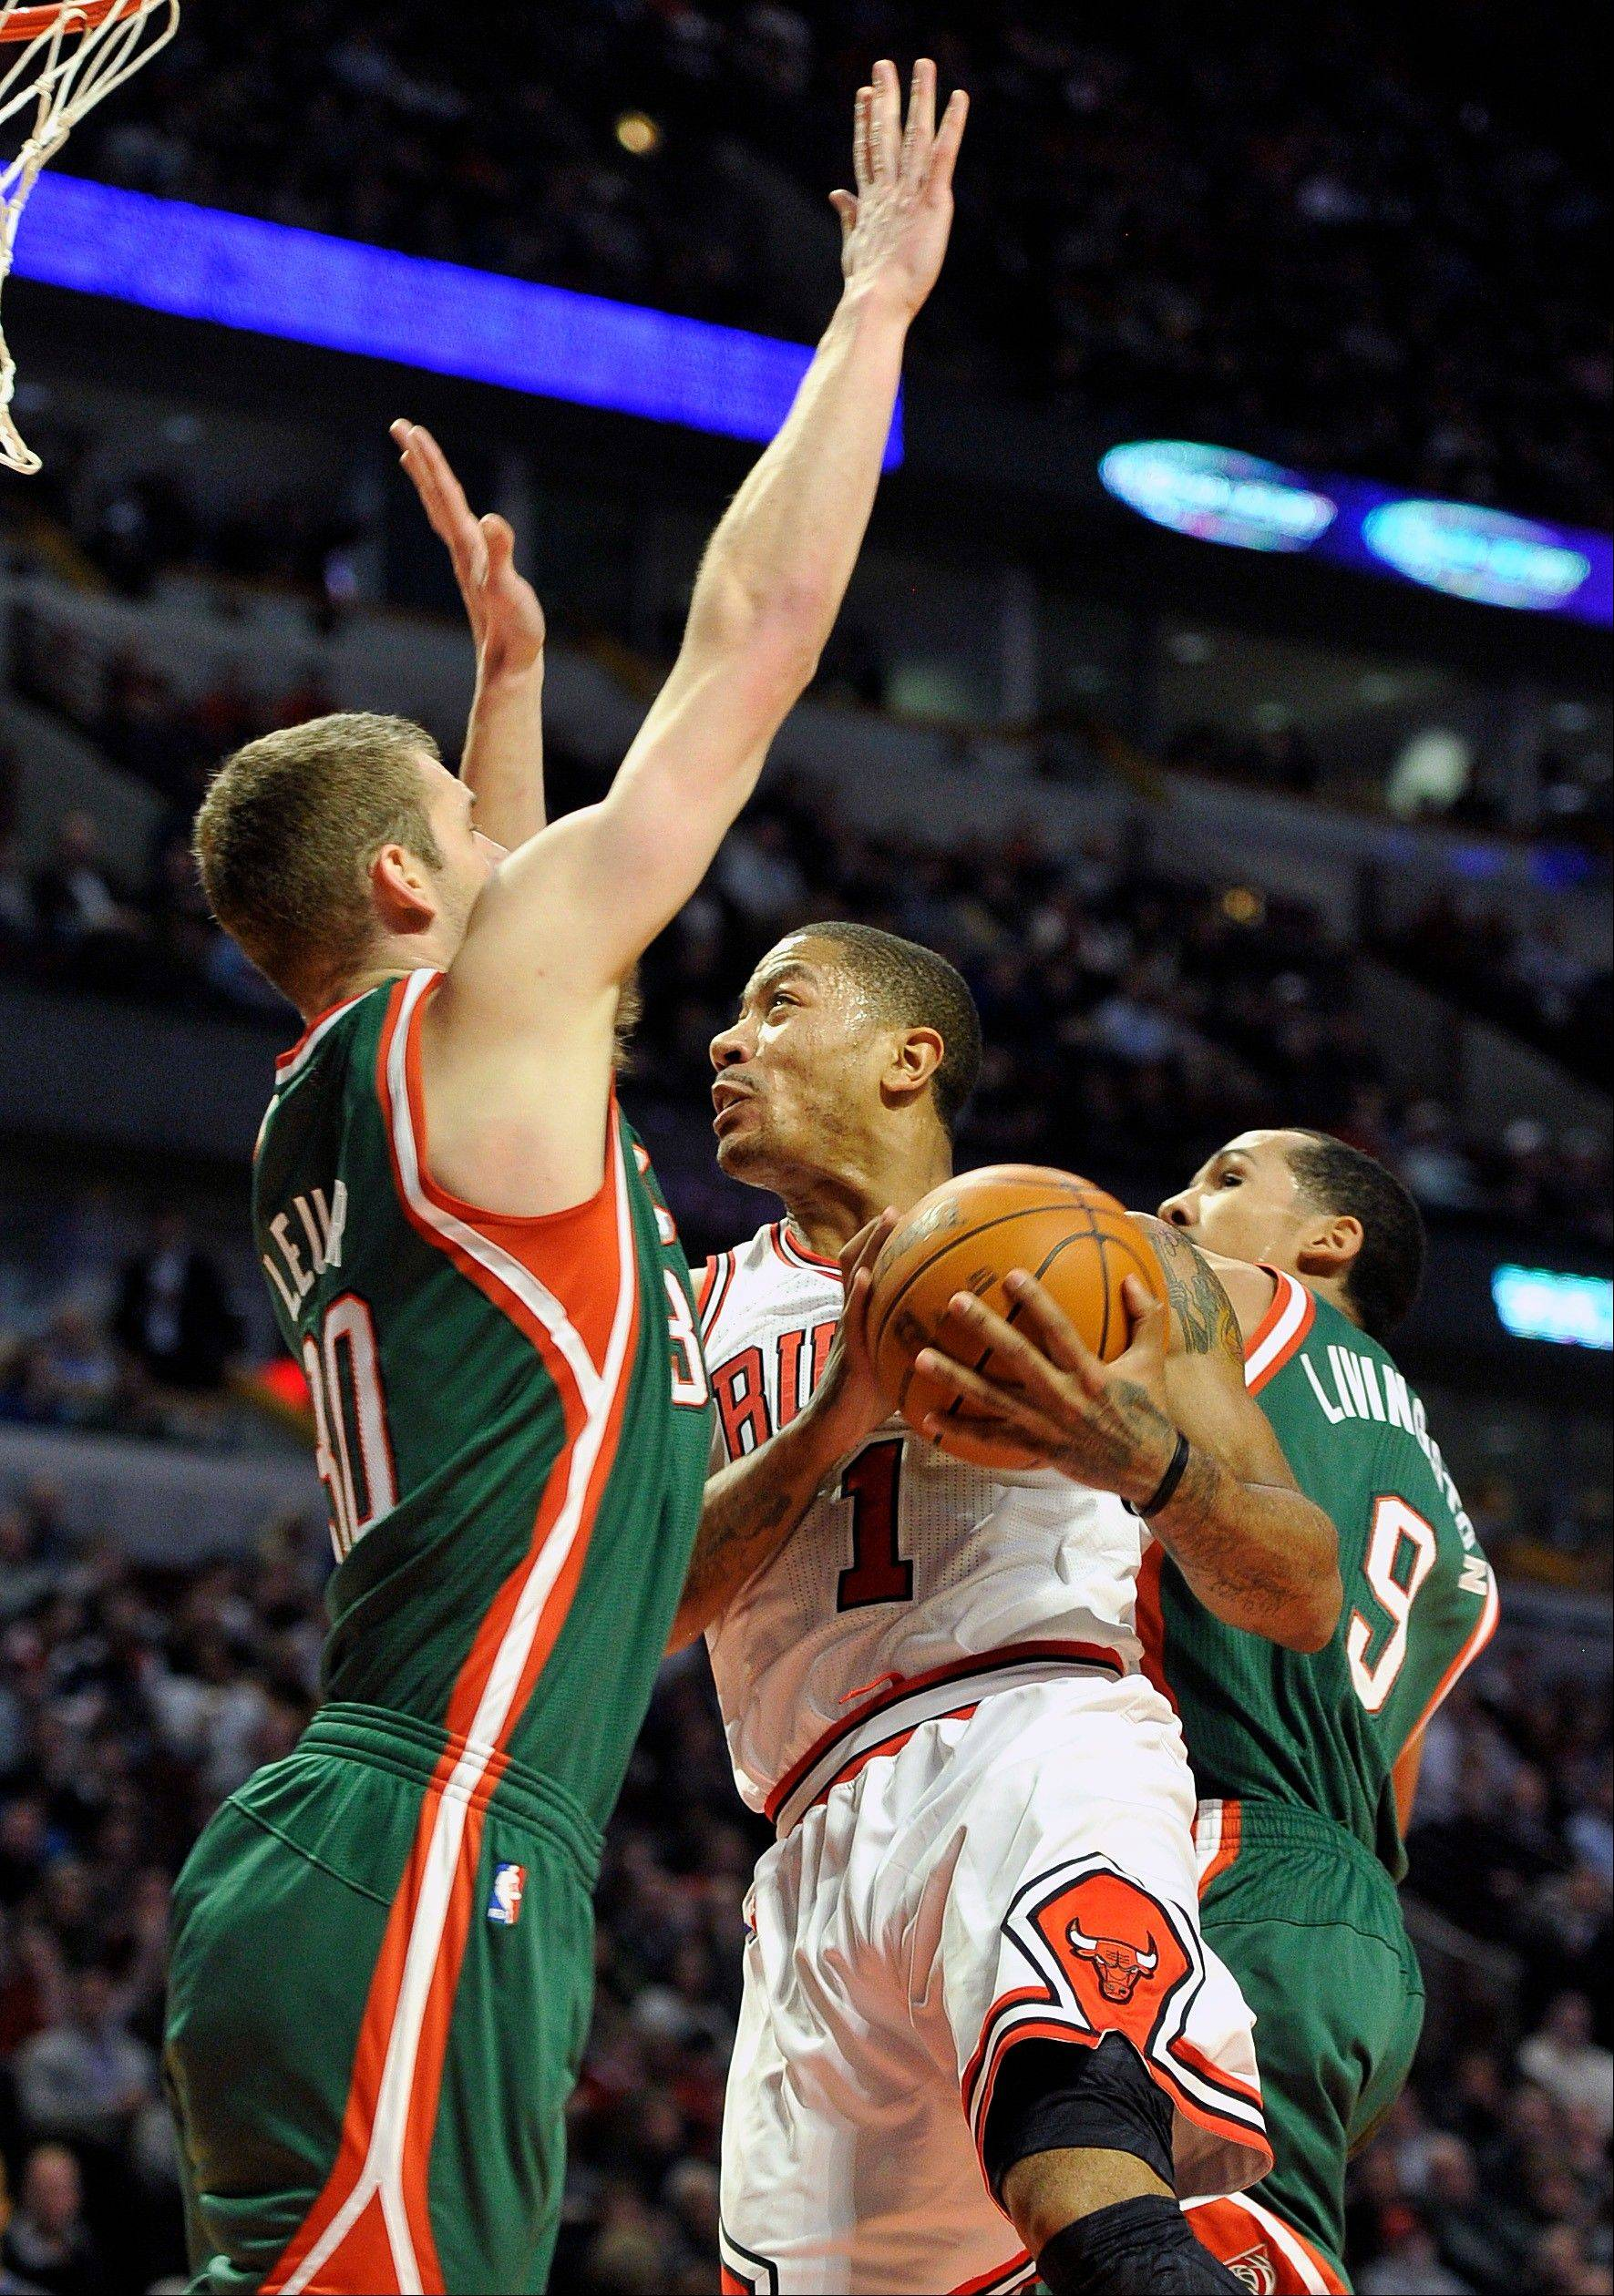 Milwaukee Bucks' Jon Leuer, left, defends as Bulls guard Derrick Rose drives to the basket Wednesday during the second half. The Bulls defeated the Bucks 110-91.